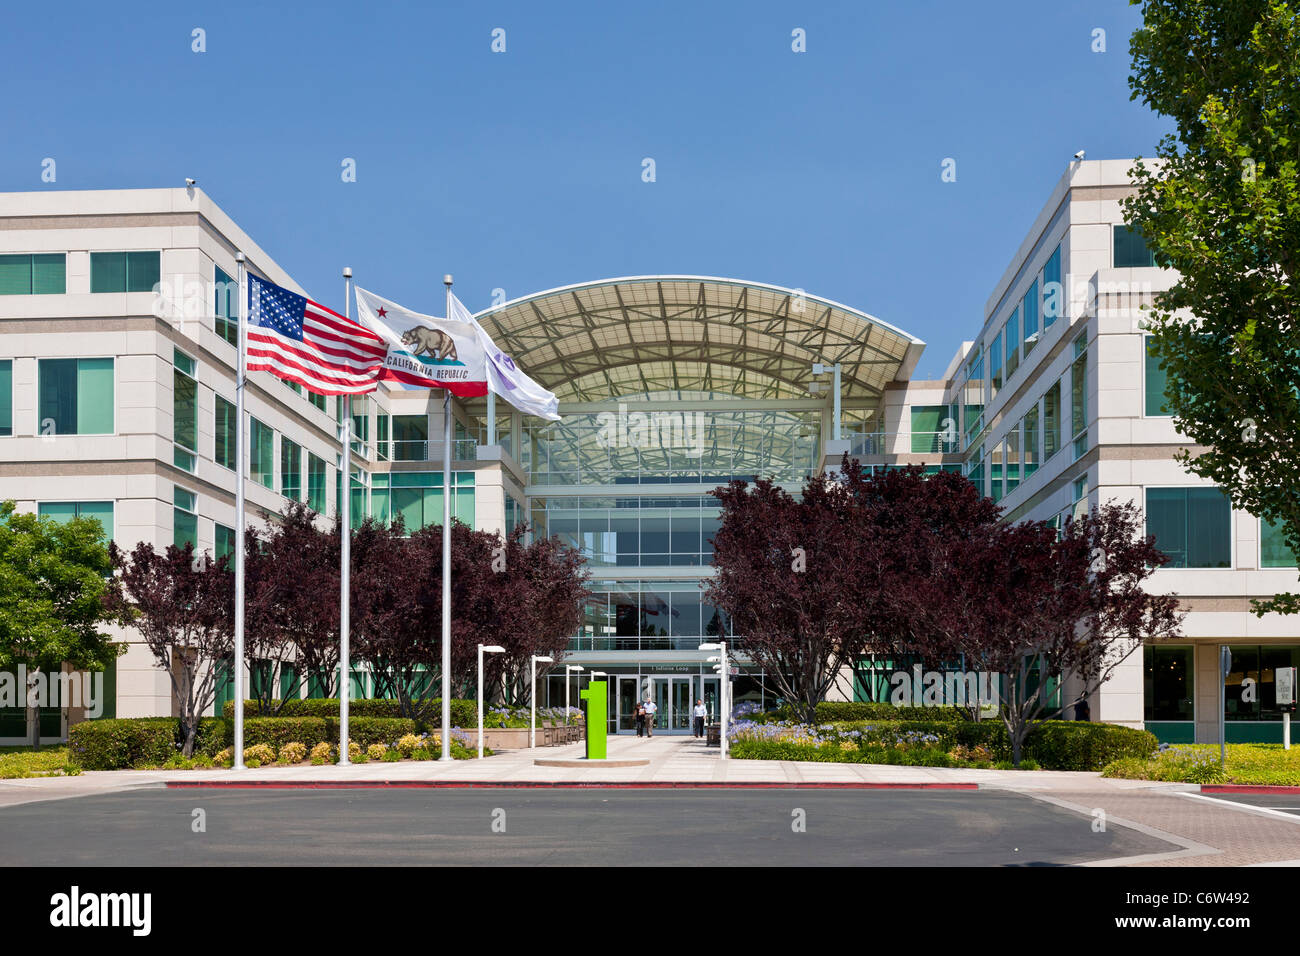 Apple Incorporated's corporate headquarters at 1-6 Infinite Loop, Cupertino, California, USA. JMH5188 - Stock Image